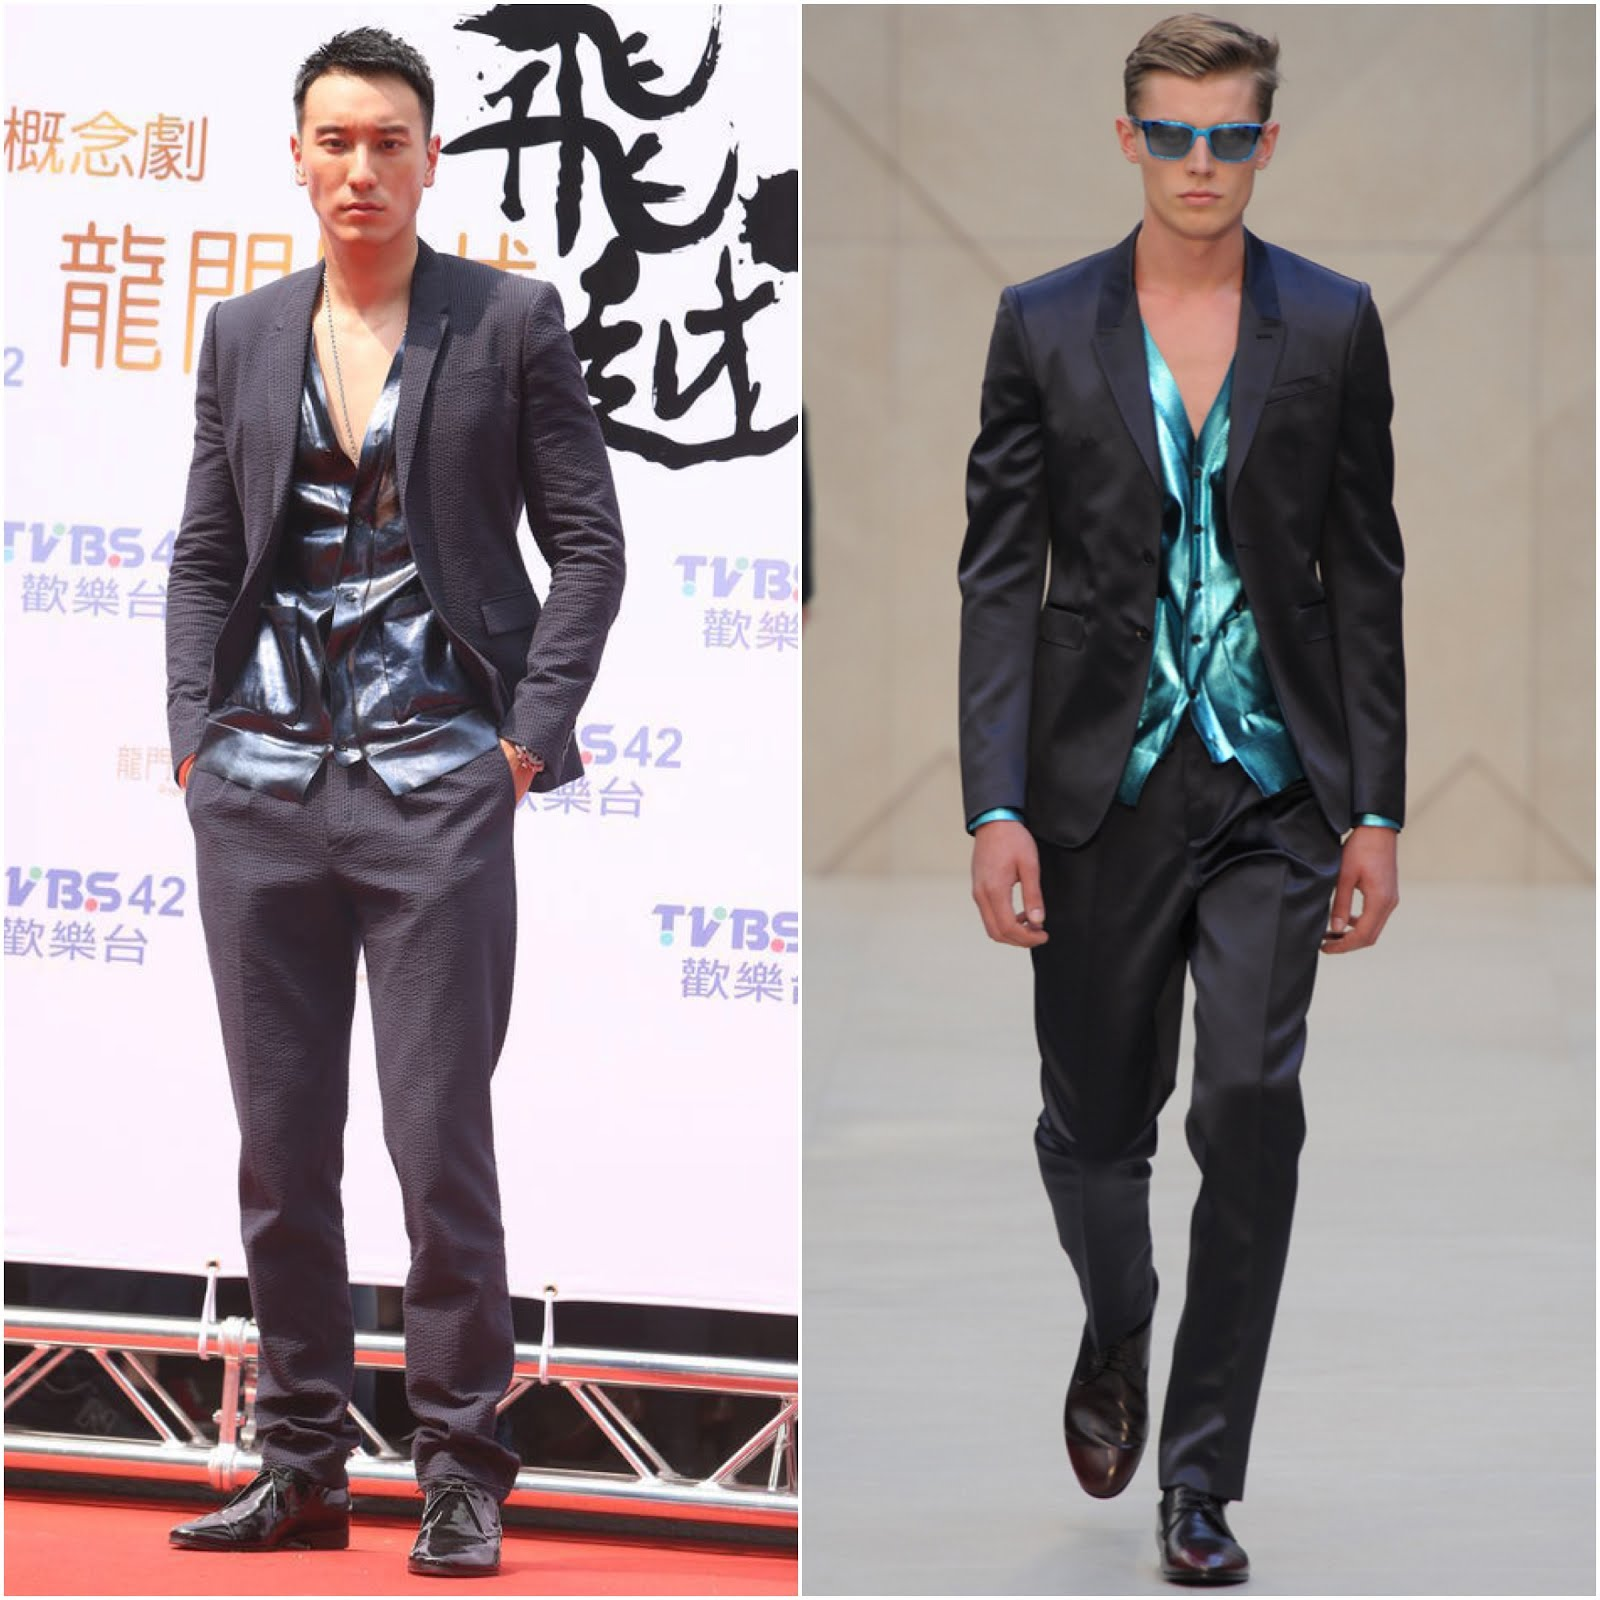 5773180c0f50 00O00 Menswear Blog Wang Yang Ming  王阳明  in Burberry Prorsum seer suckle  suit and